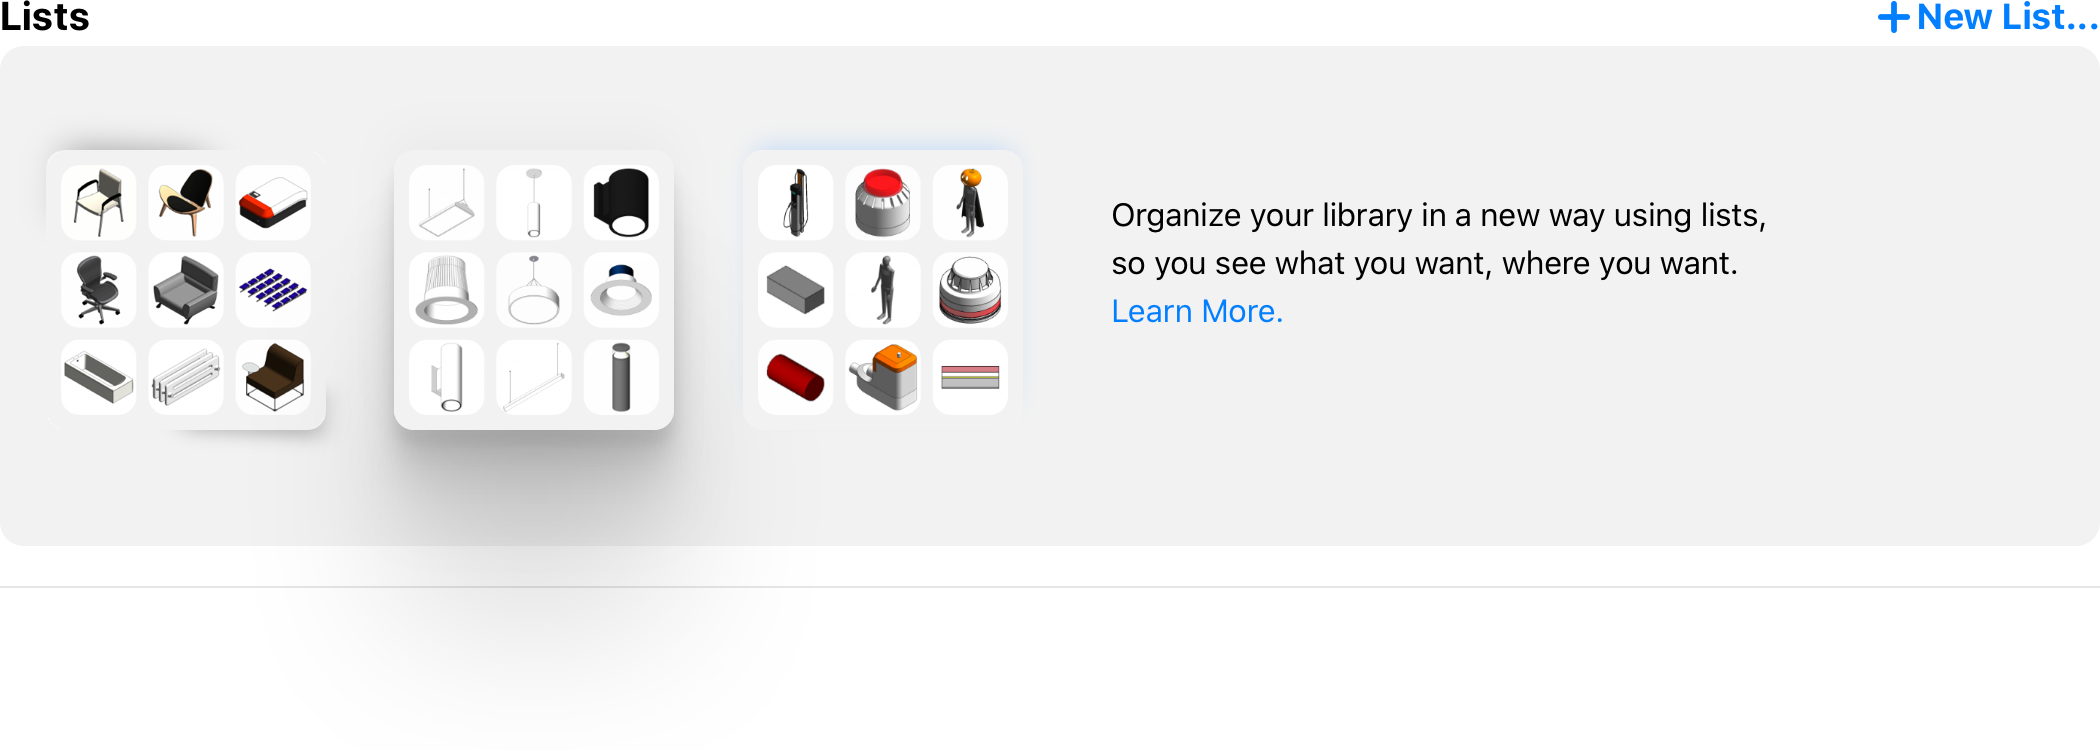 New Lists section on the Library landing page.